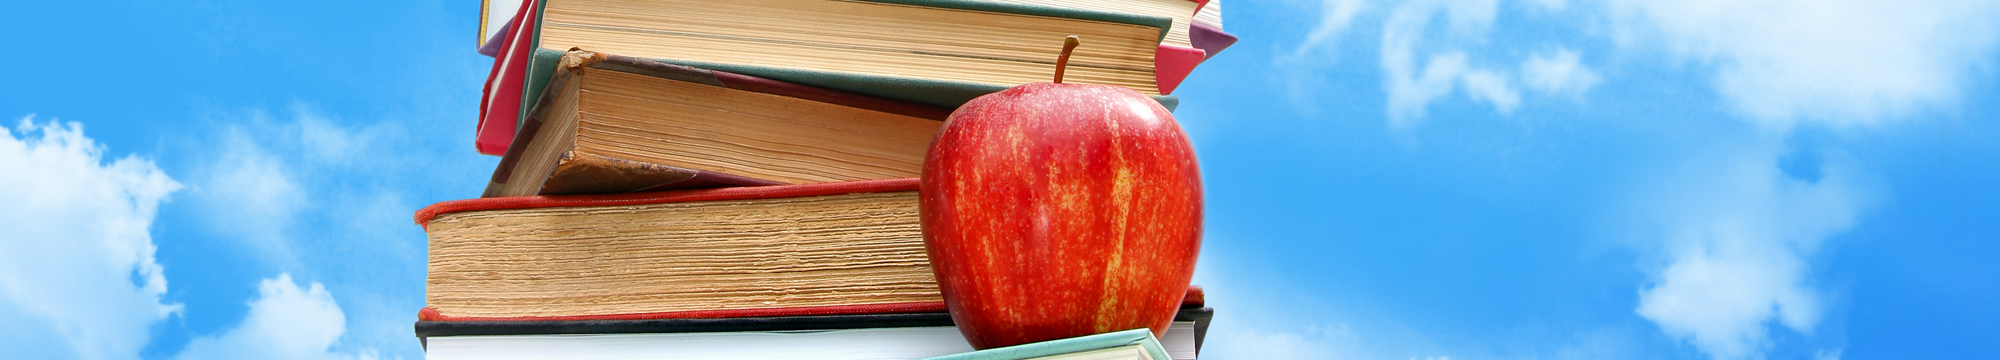 a red apple on a stack of books with a blue sky in the background